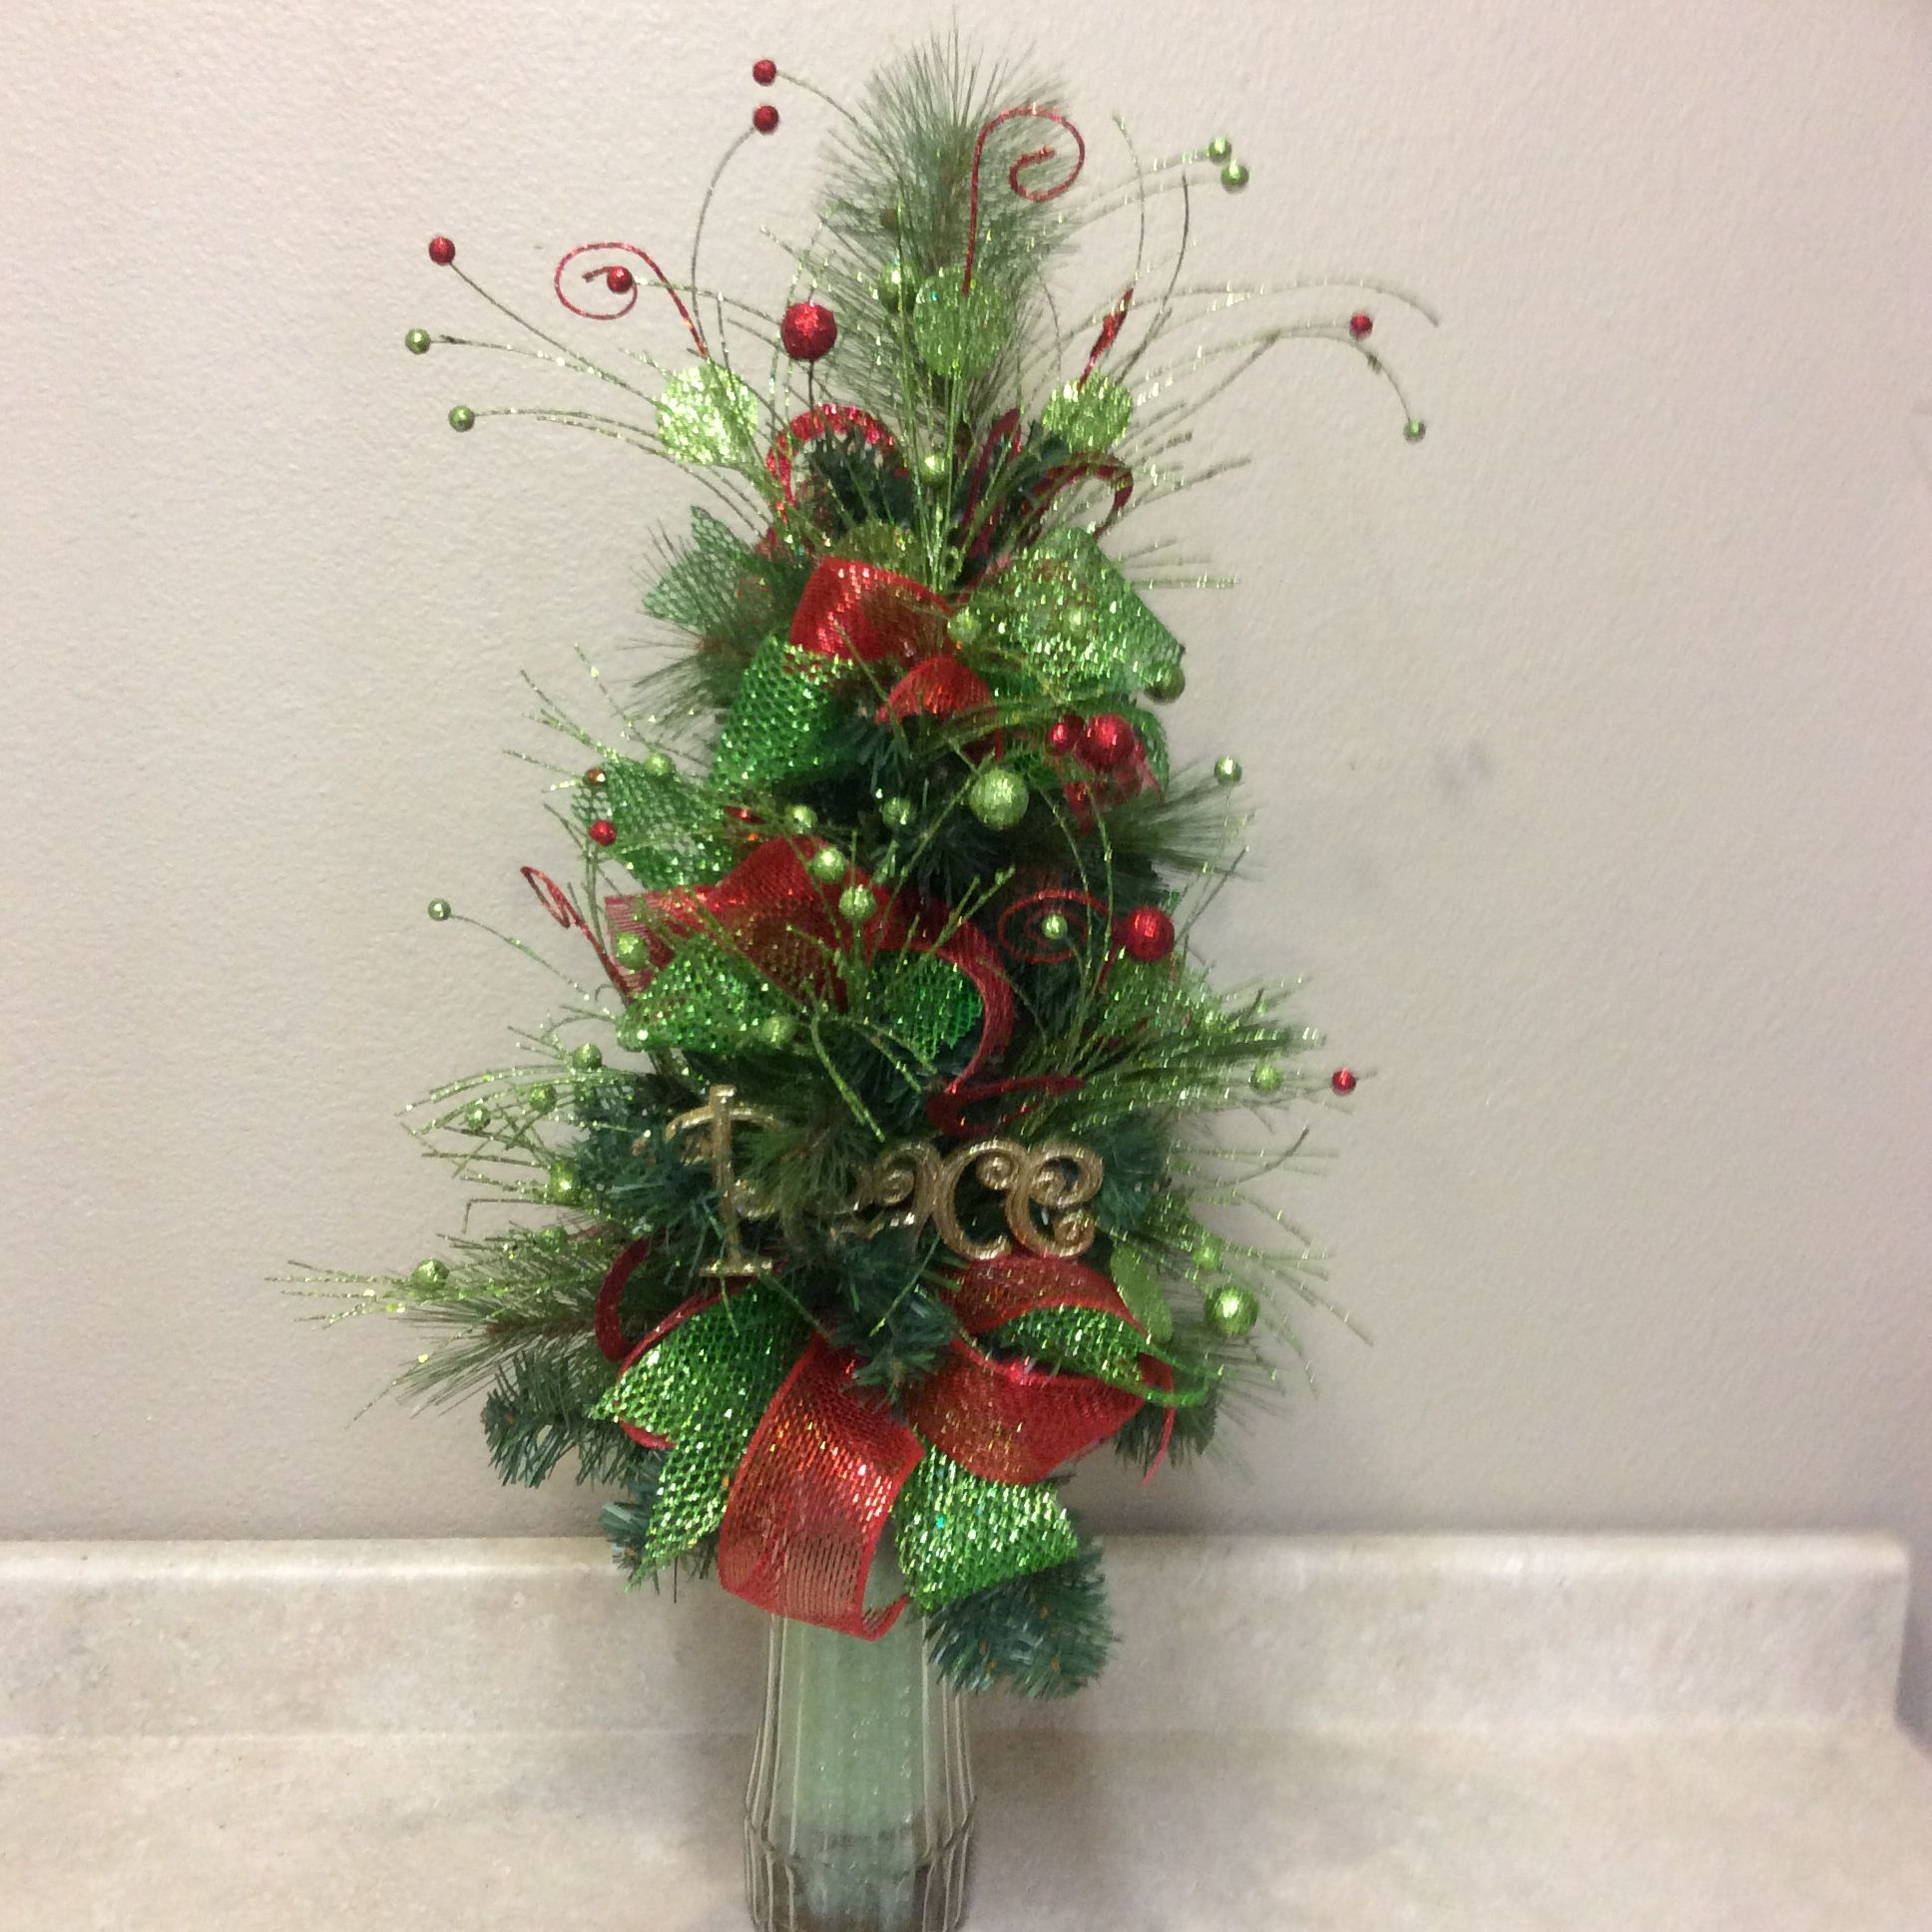 Quot Little Tree Quot Cemetary Arrangement Silk And Craft Creations Christmas Floral Arrangements